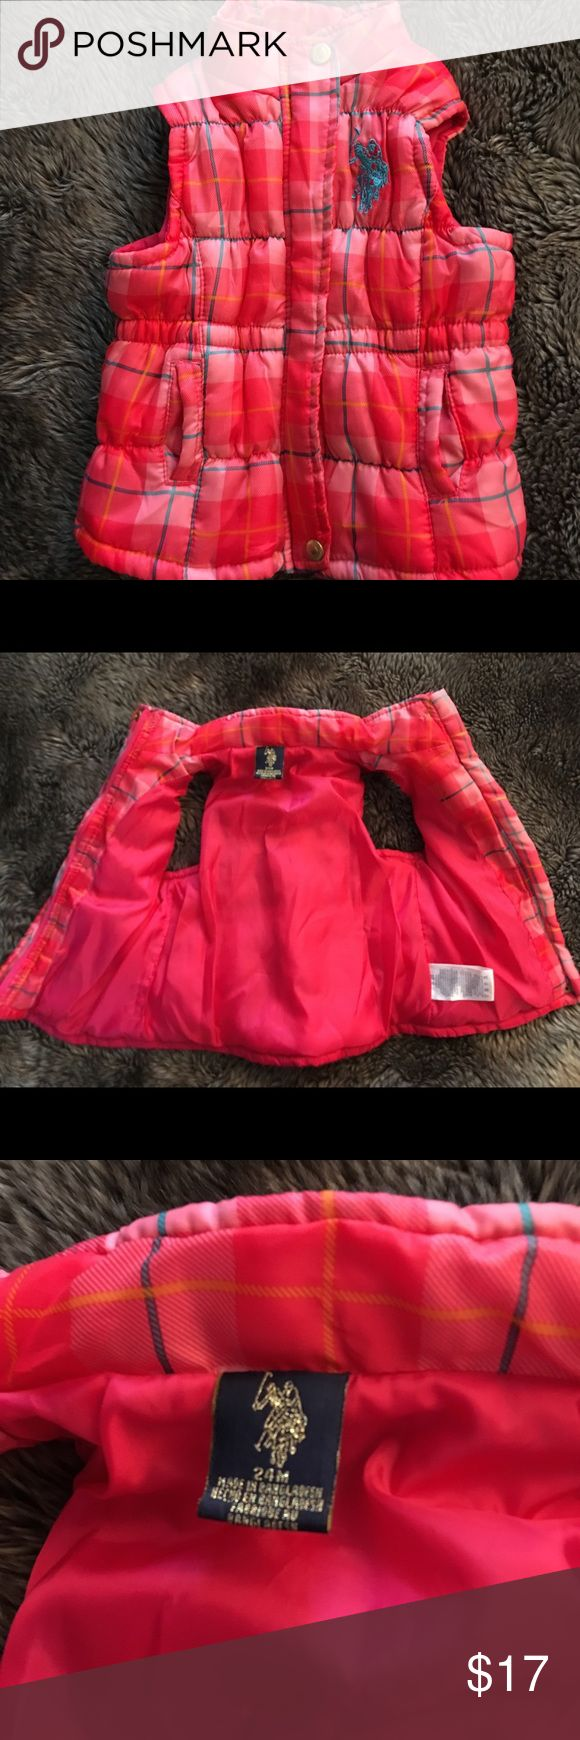 U.S. Polo association girls puff vest sz24mo U.S. Polo association girls puff vest size 24 months. Pink in color with plaid pattern. Zip up front with snap fold over. Lined inside. Fitted with elastic gathering throughout the back. U.S. Polo Assn. Jackets & Coats Vests